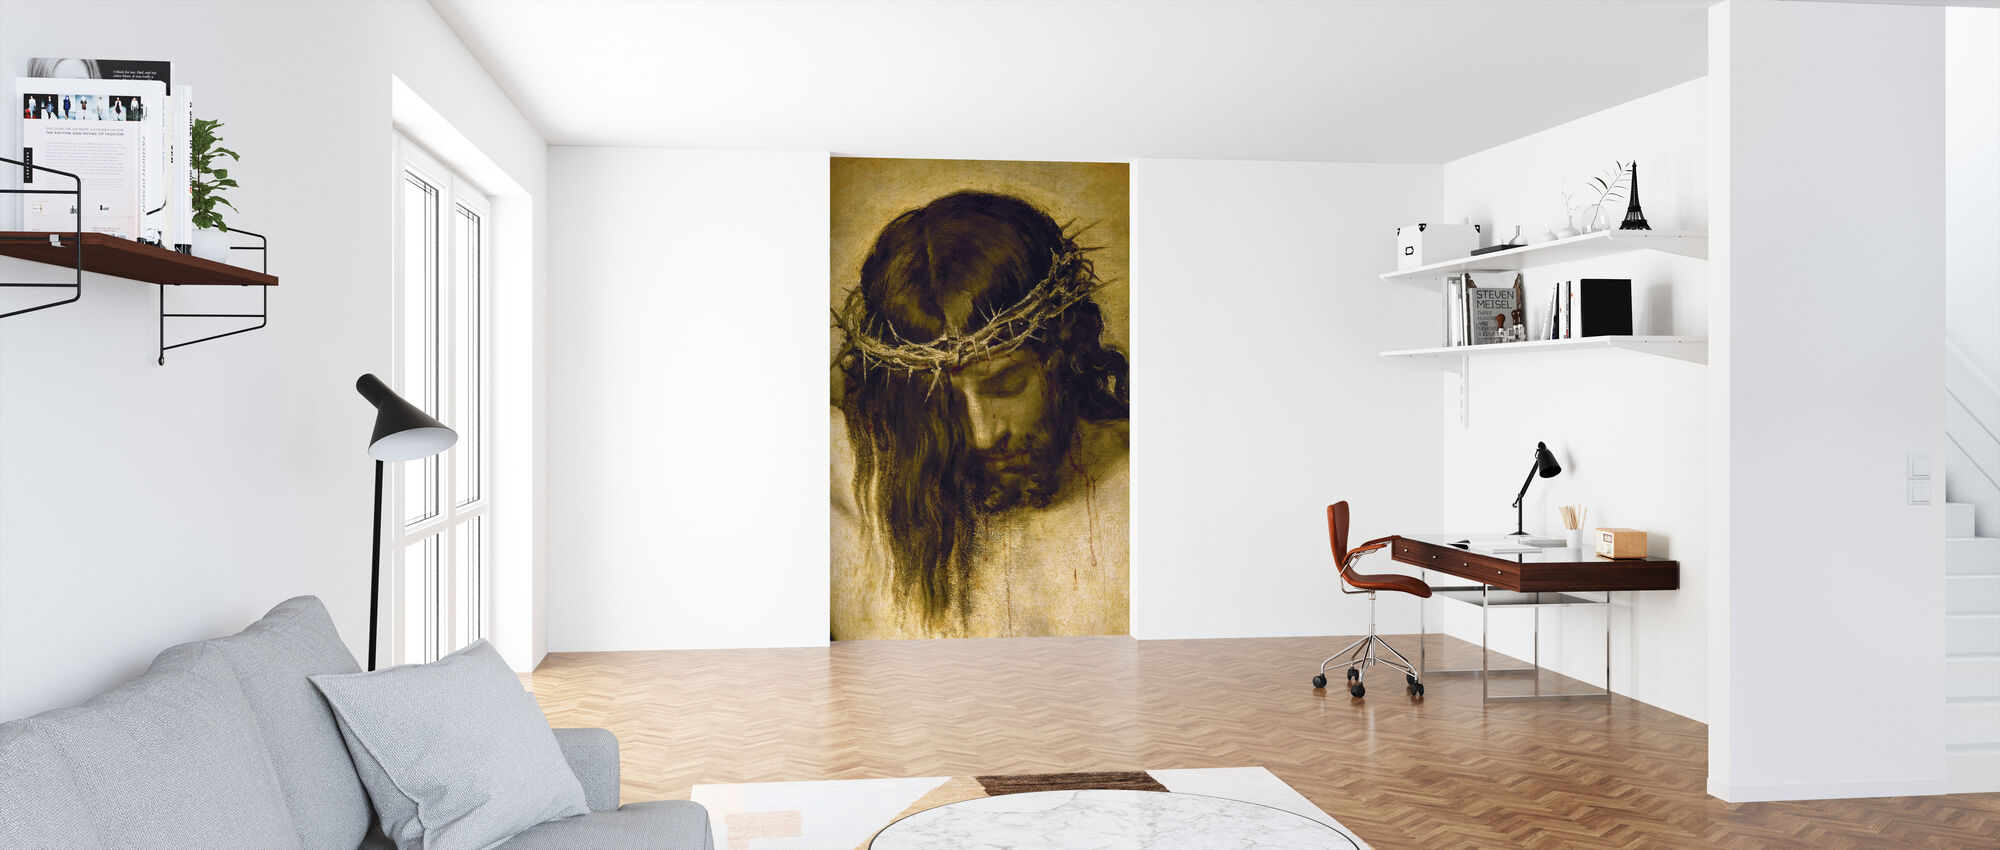 Crucified Christ - Wallpaper - Office